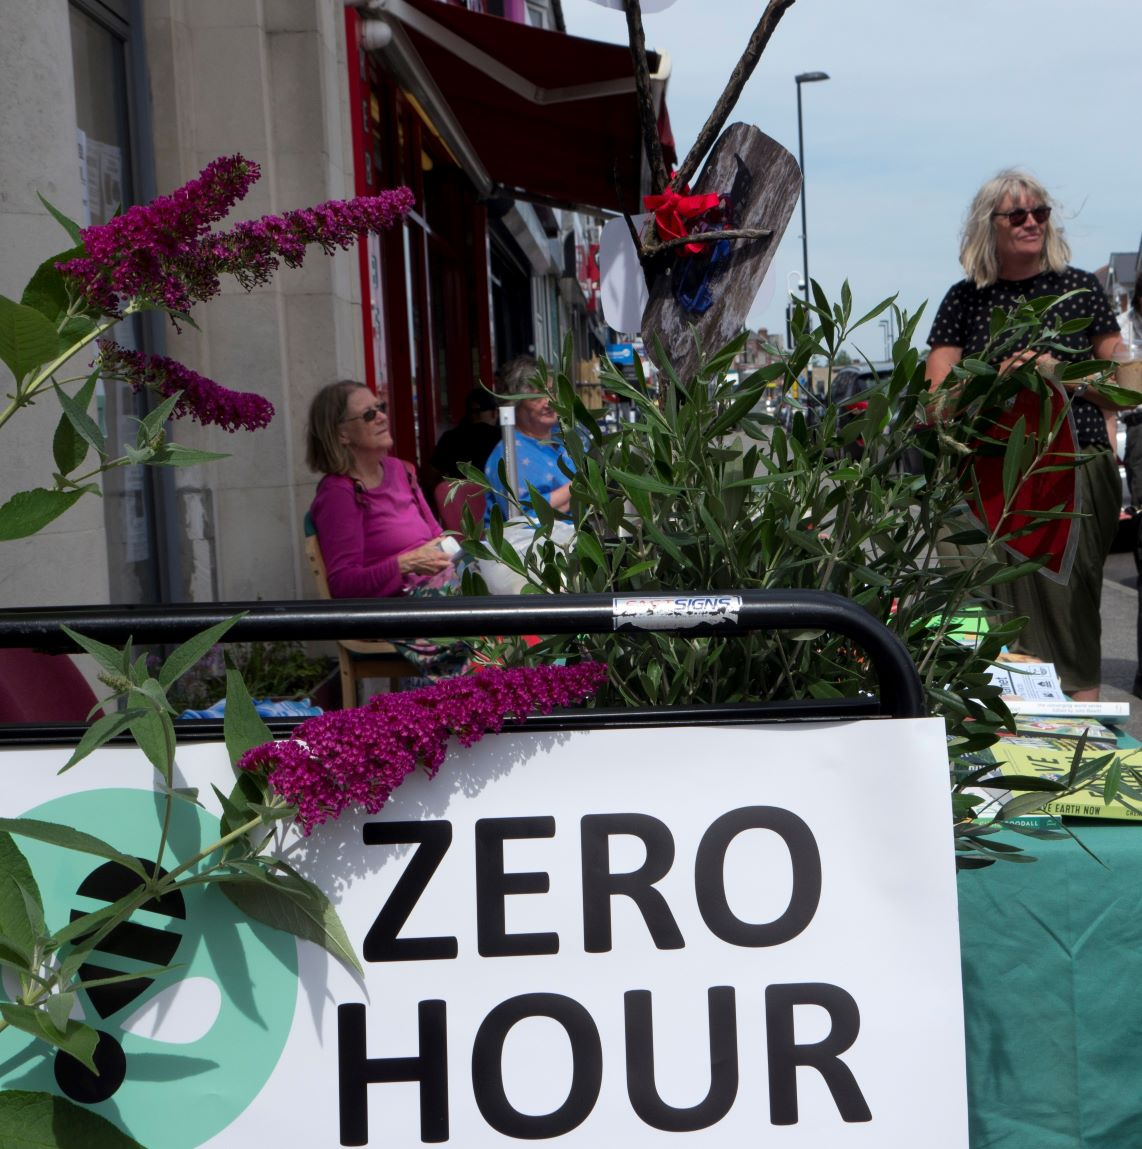 Pop up garden hits Portswood high street to highlight Climate and Ecological Emergencies Bill